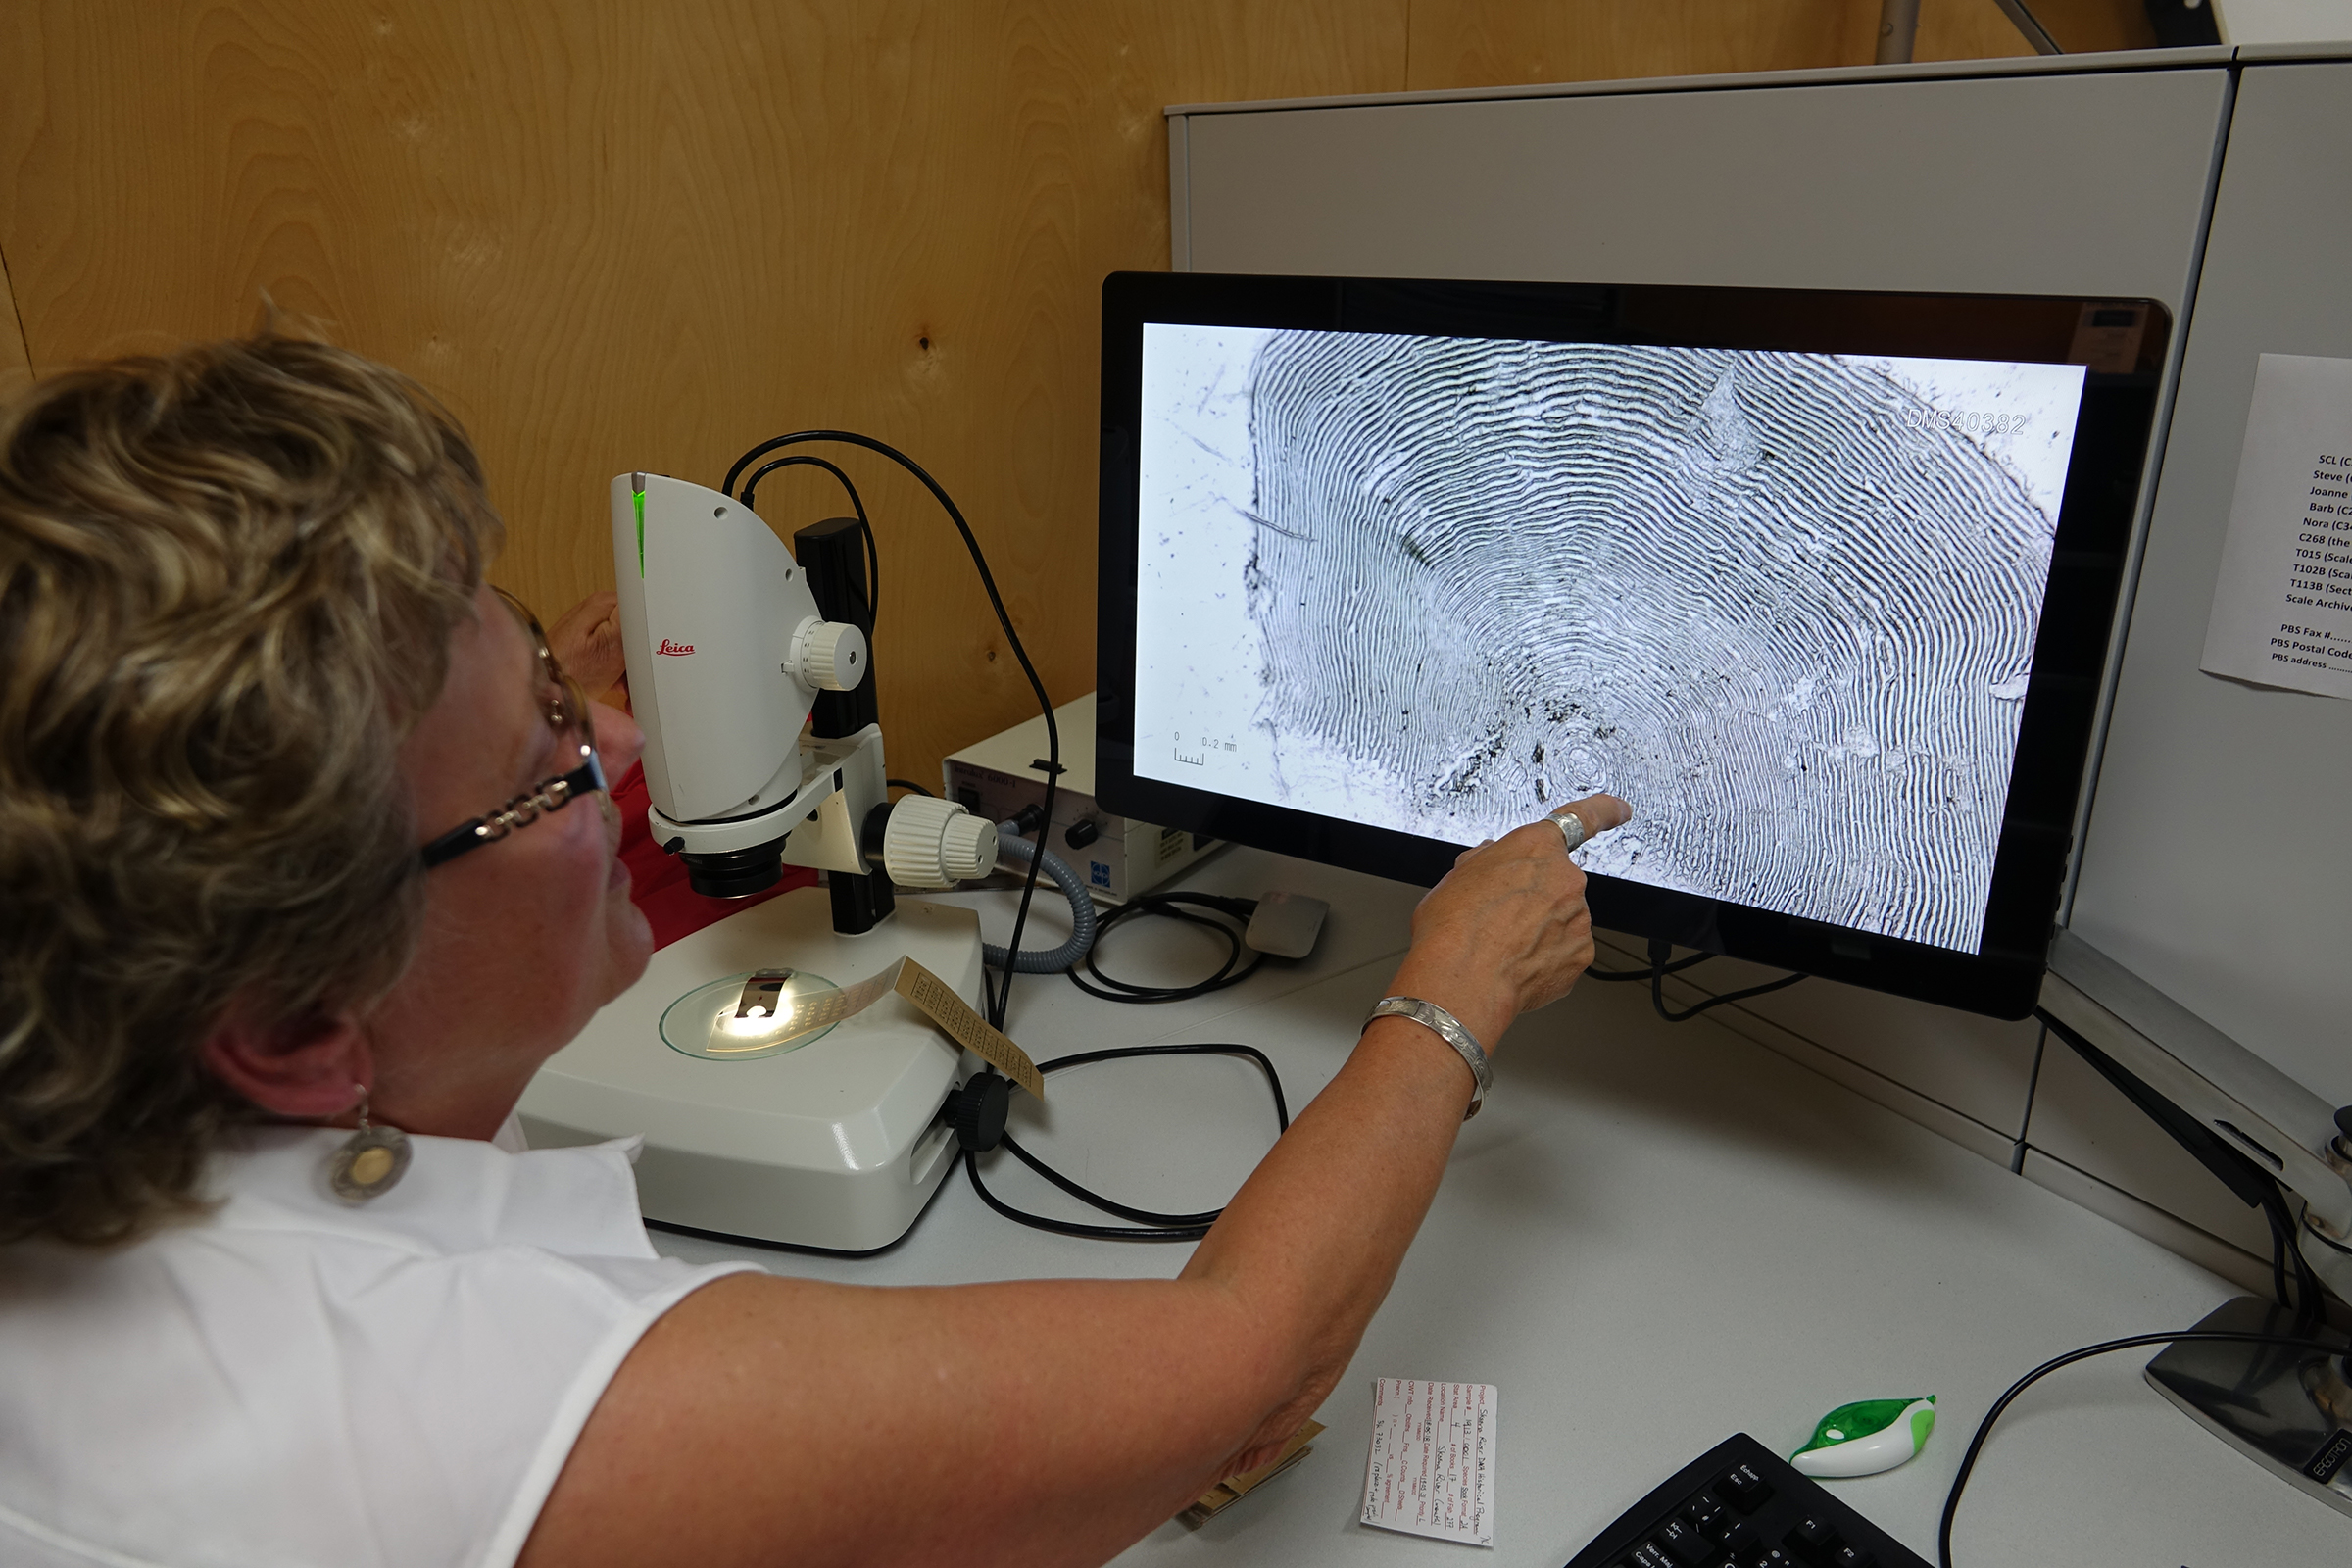 At the DFO Pacific Biological Station in Nanaimo, on Vancouver Island, in May 2019, Darlene Gillespie points to a projected image of a sockeye salmon scale under a microscope. Each scale, says Gillespie, is a little treasure trove of information. Photograph by Lesley Evans Ogden